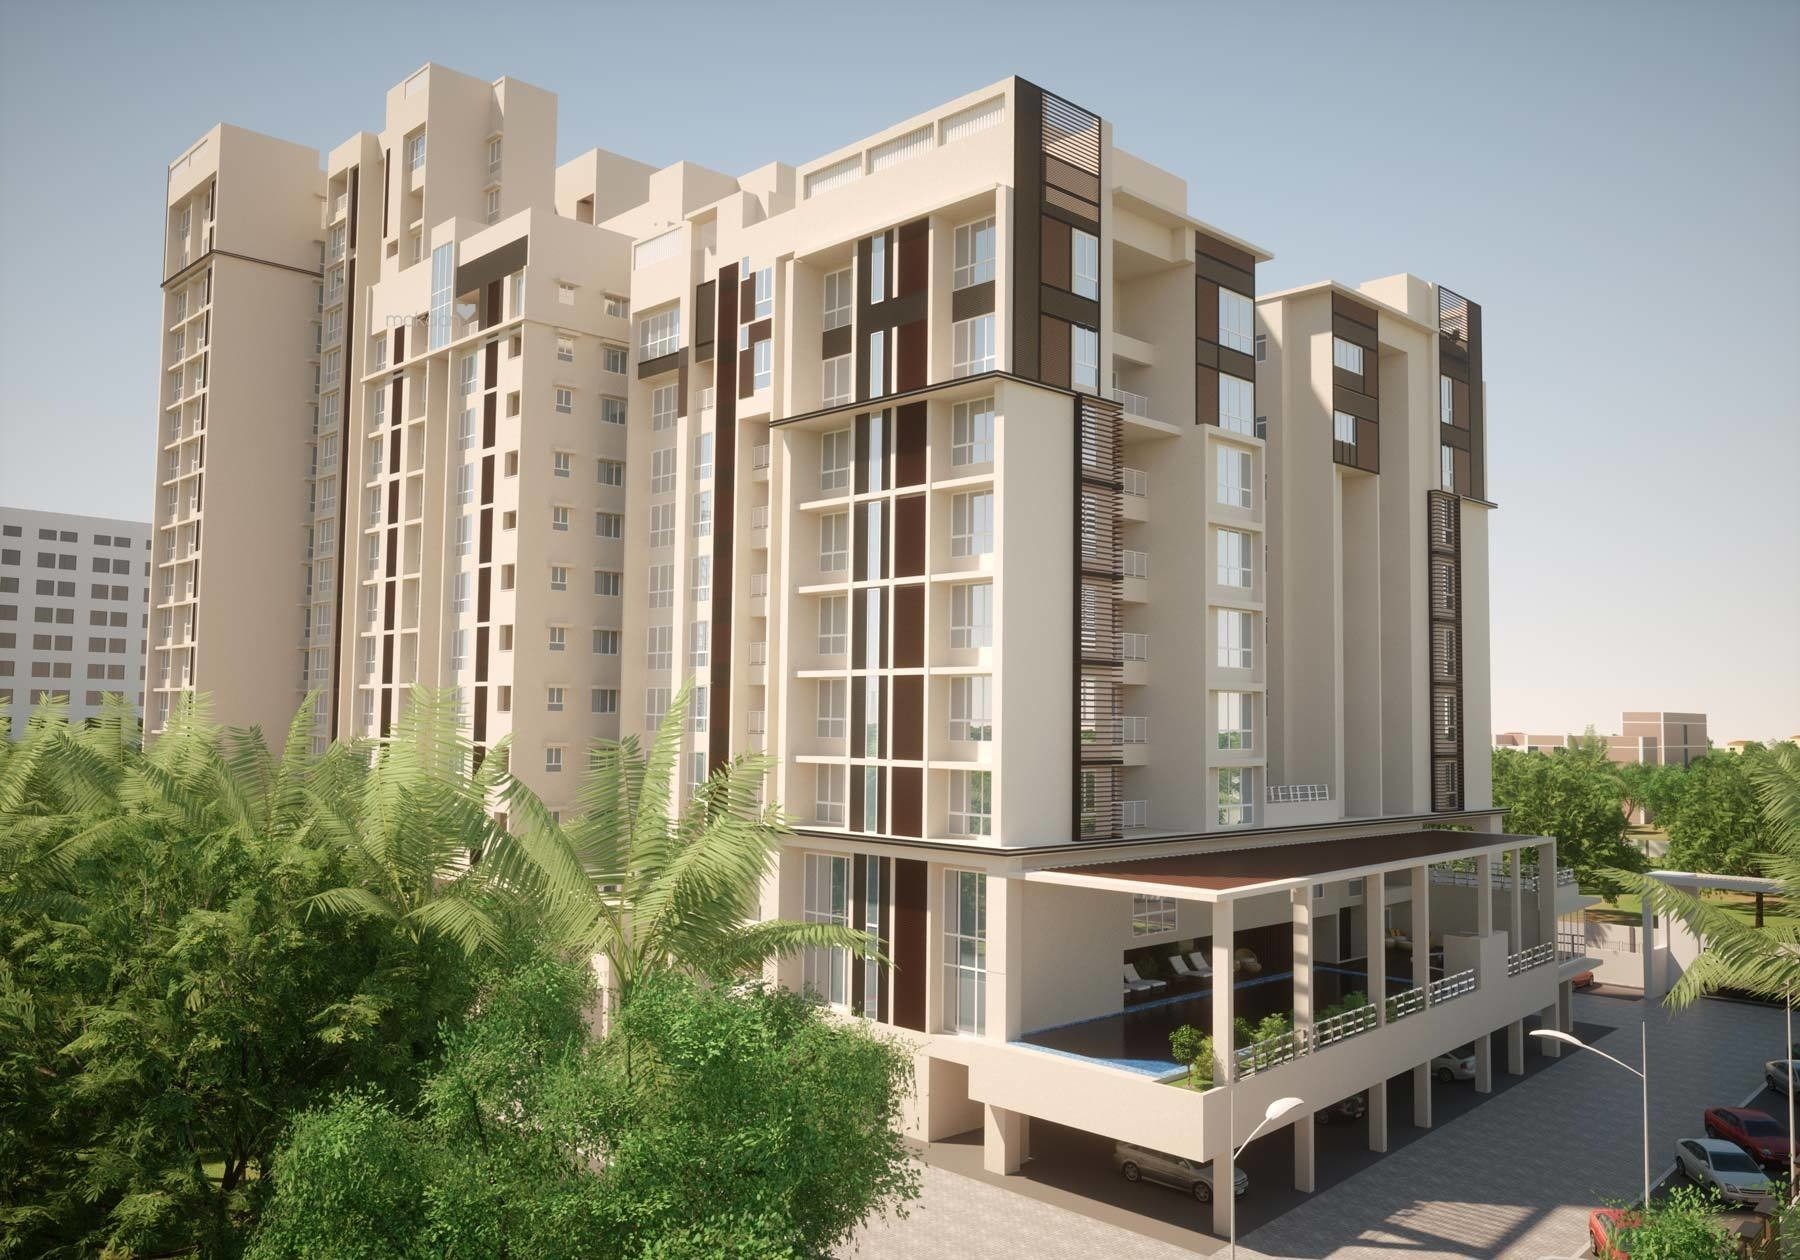 4452 sq ft 4BHK 4BHK+5T (4,452 sq ft) + Servant Room Property By Mercury Housing and Properties In Artistica, Sholinganallur